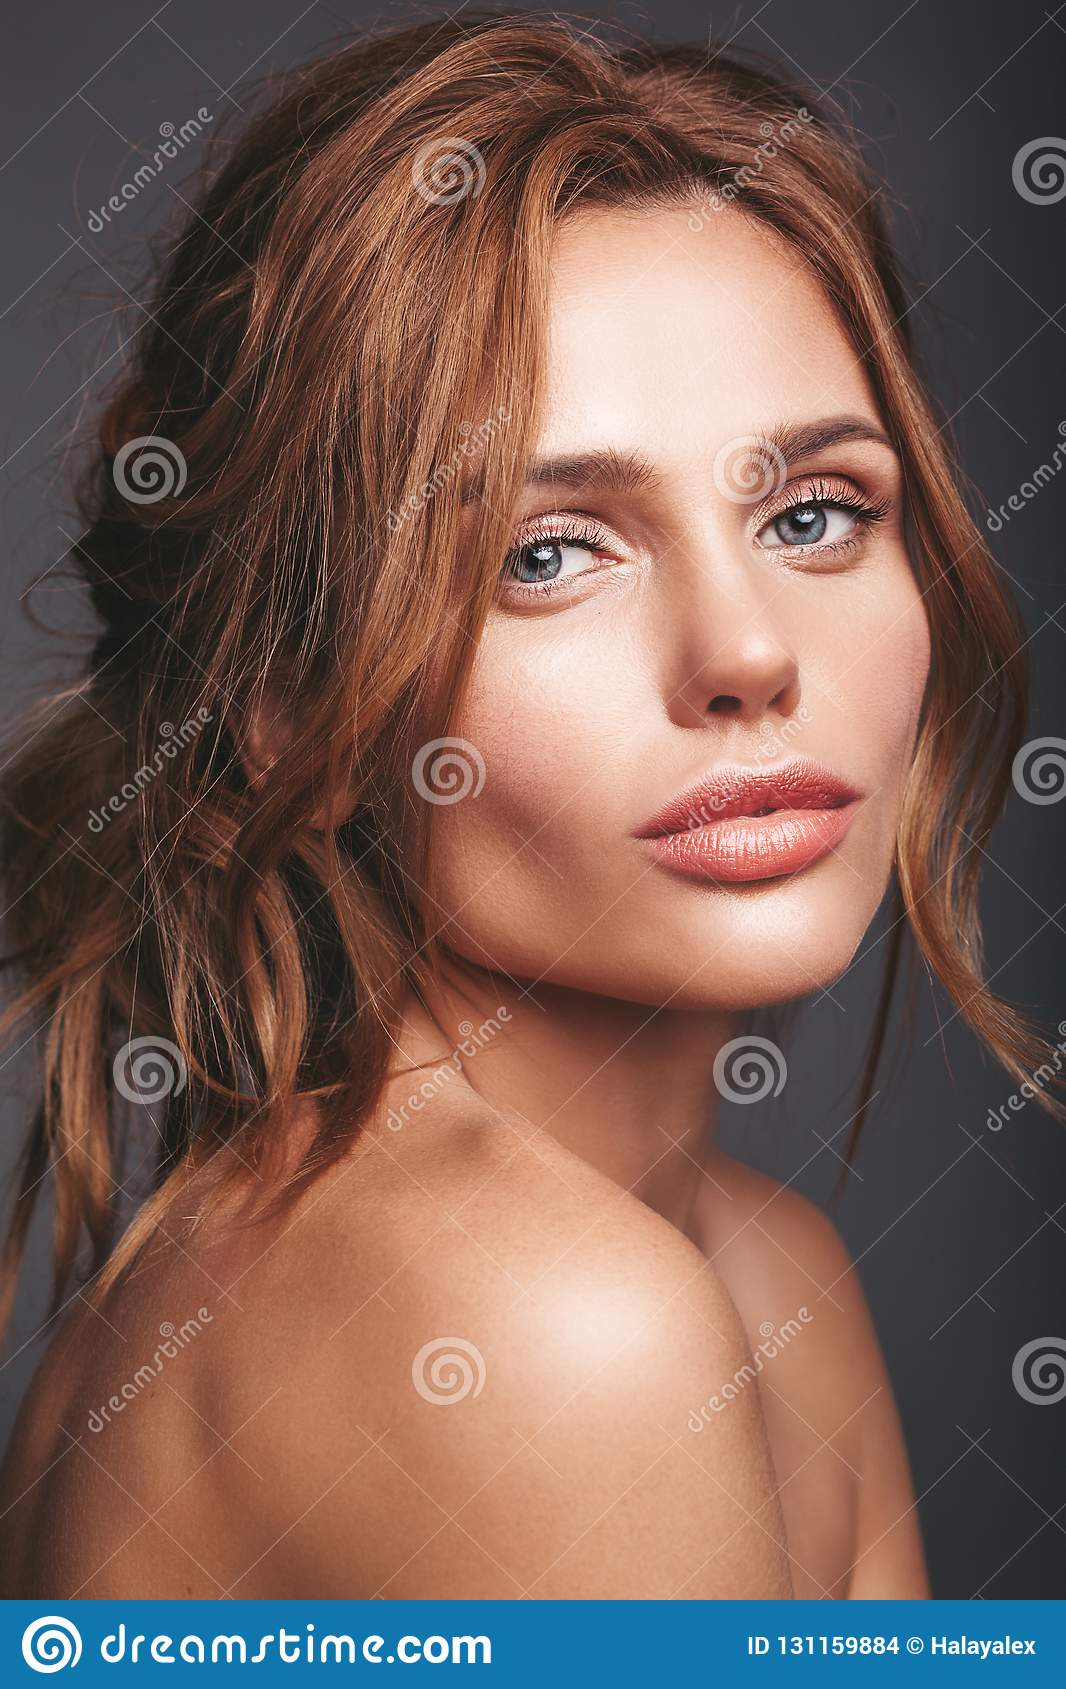 Young blond woman model with natural makeup